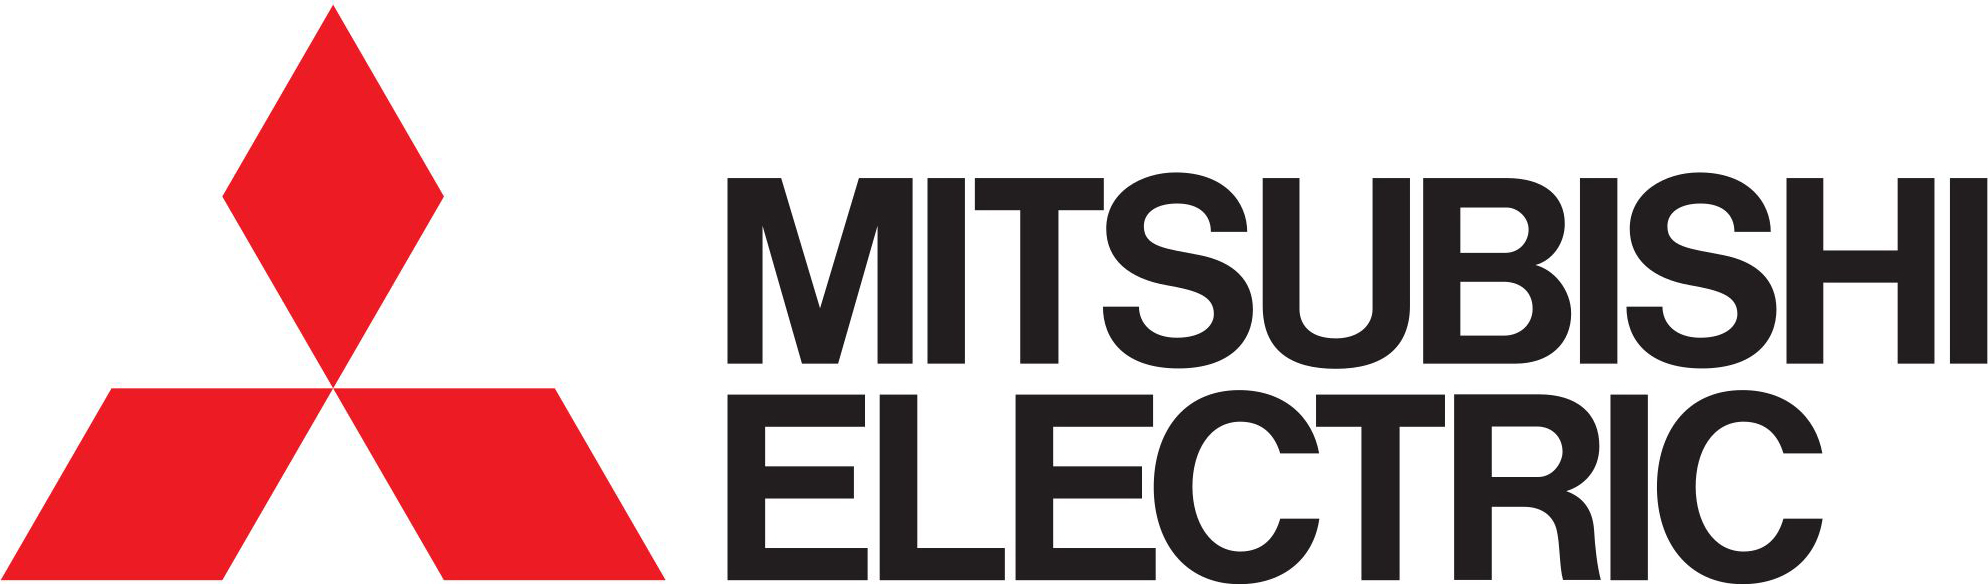 Mitsubishi_Electric_logo_result